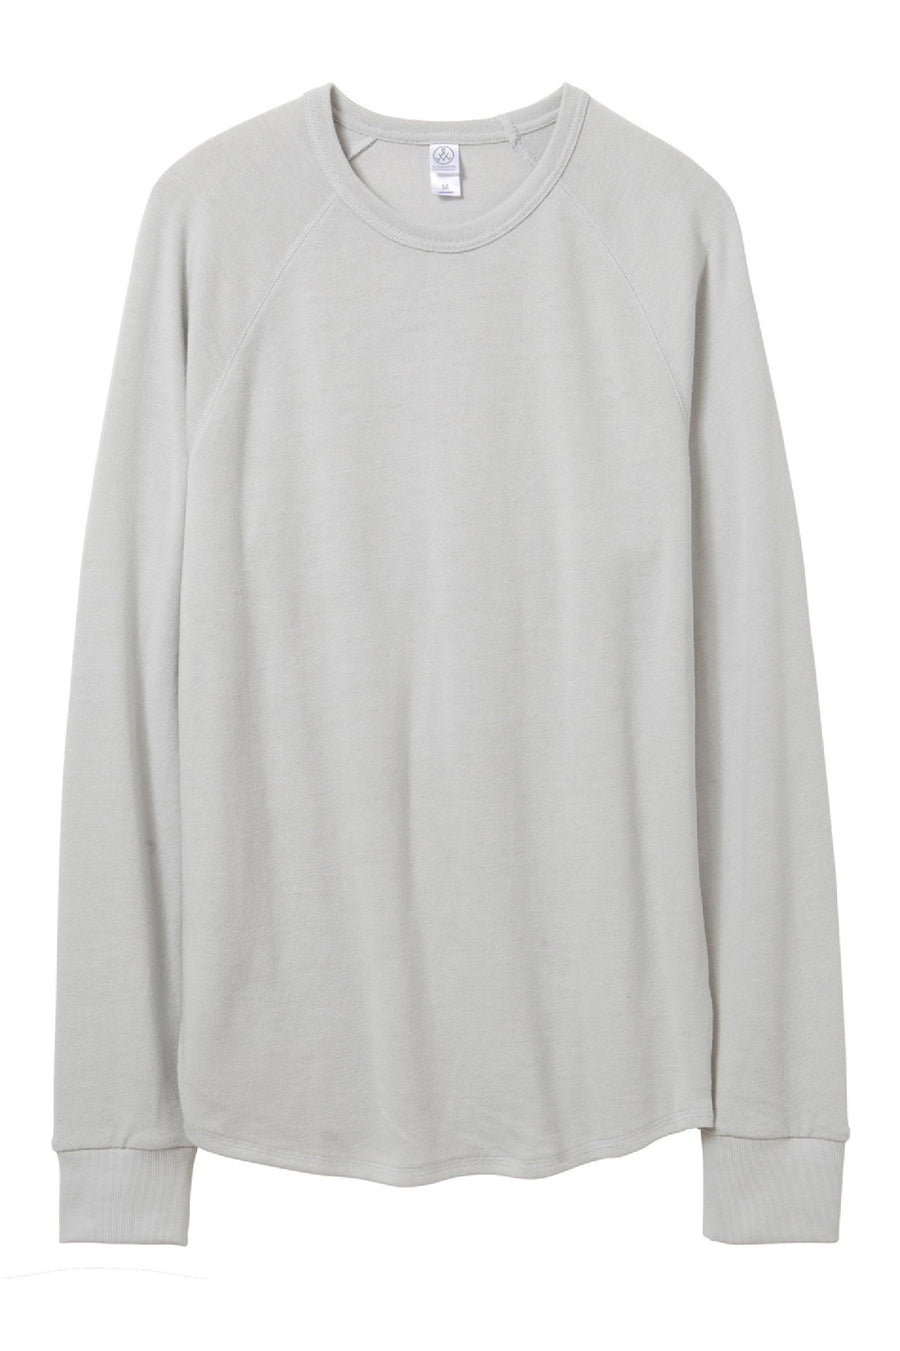 Kickback Vintage Heavy Knit Pullover Sweatshirt - Light Grey